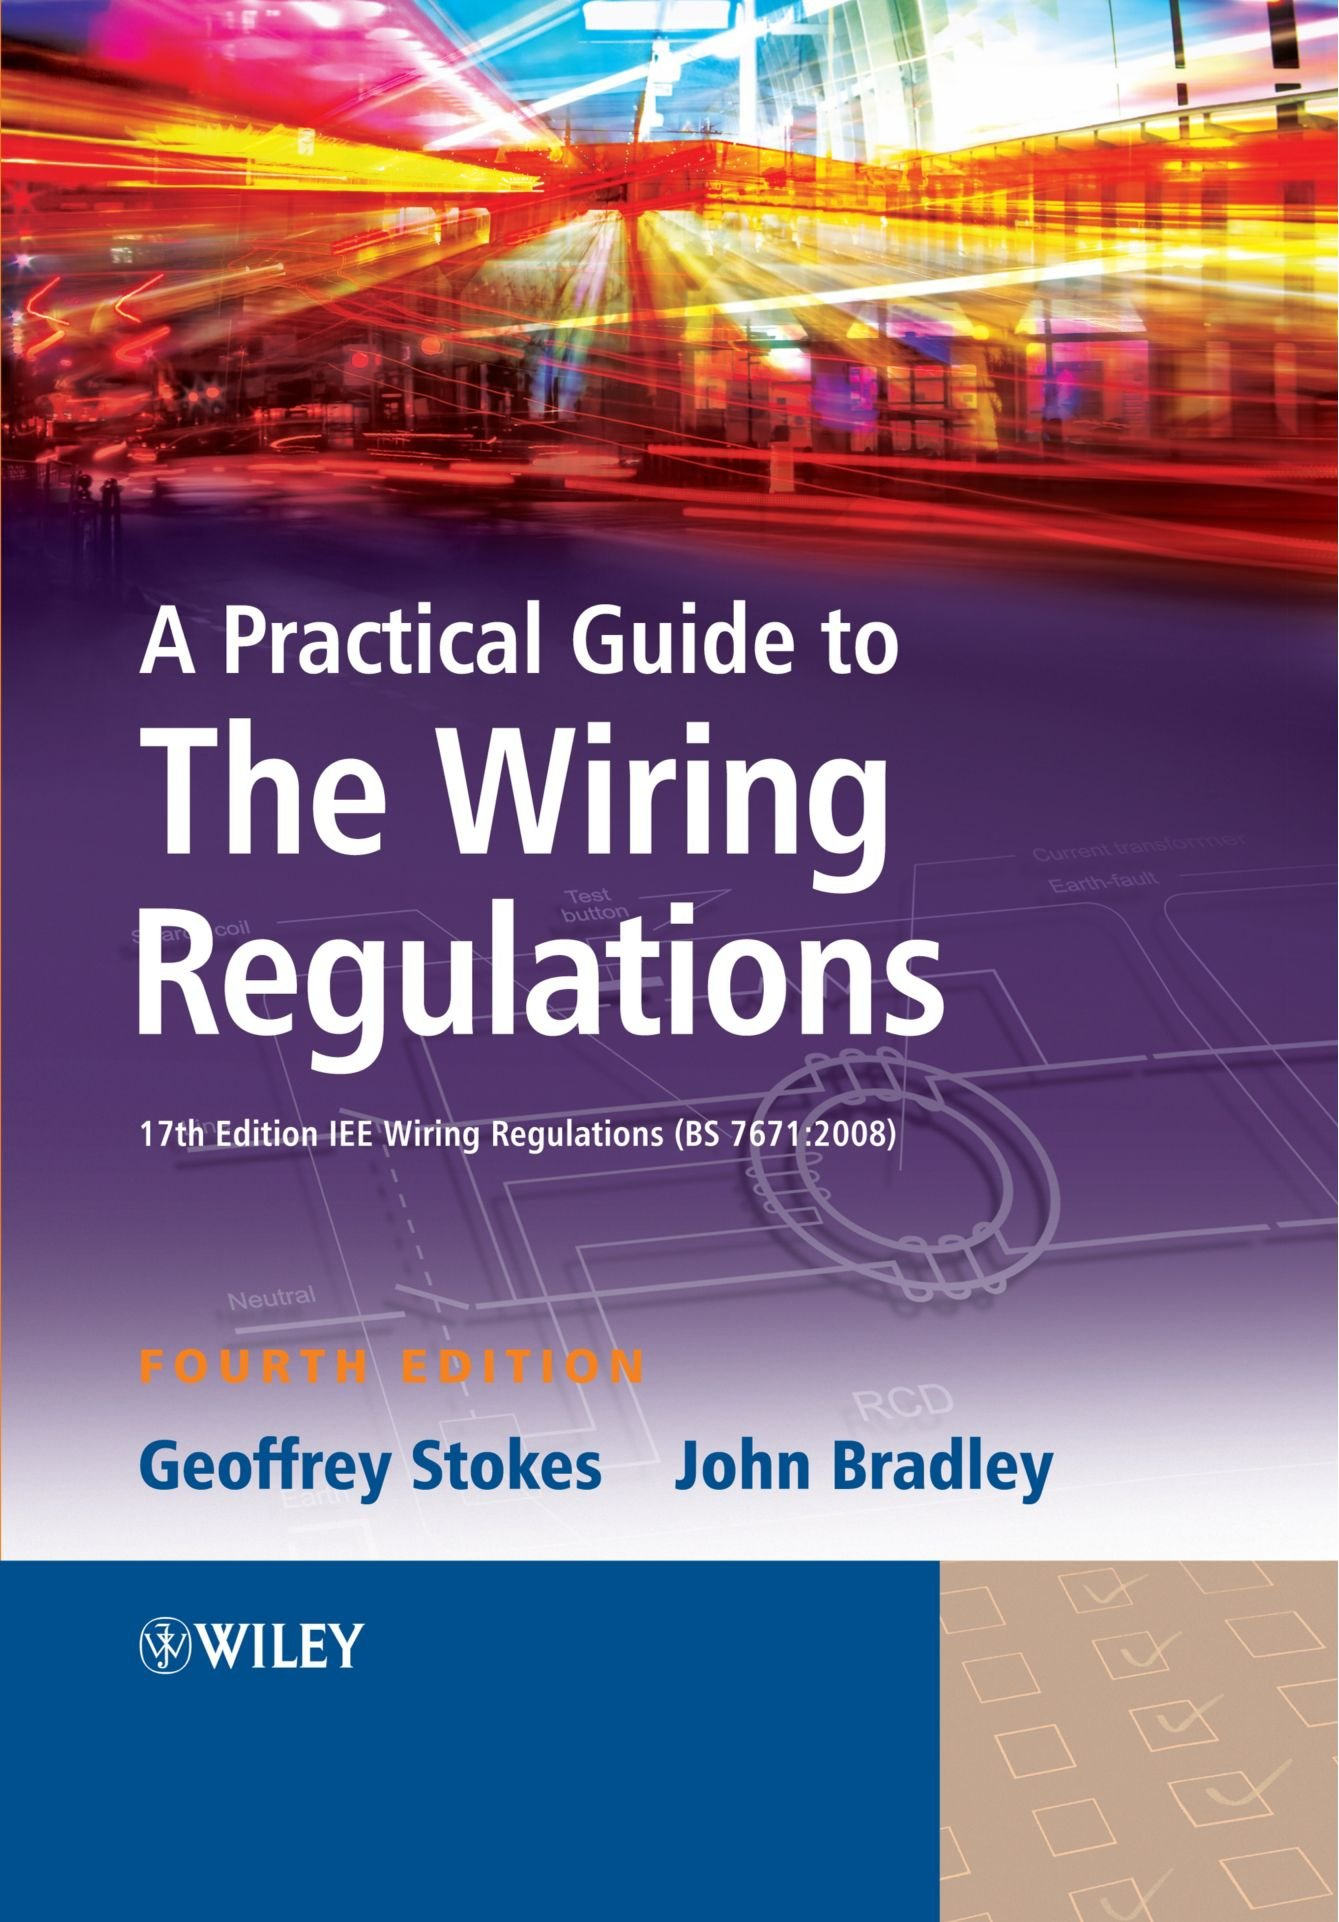 Practical Guide Wiring Regulations 4e Geoffrey Stokes 17th Edition Book 9781405177016 Books